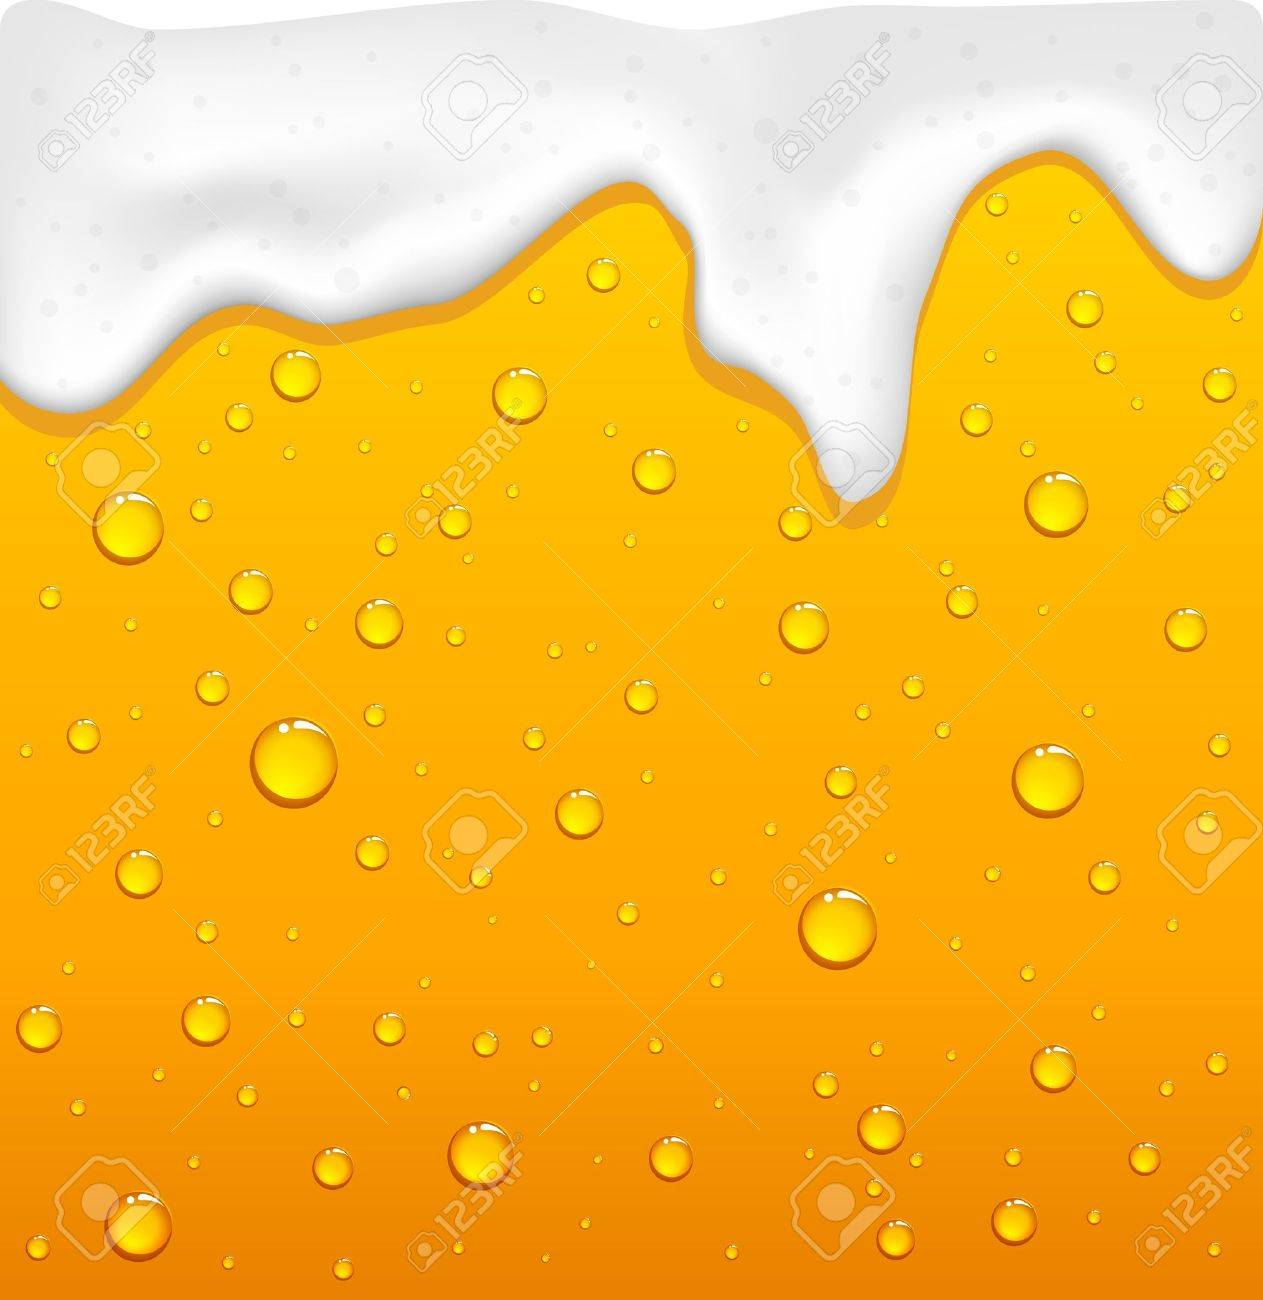 Drops and yellow drink with foam, illustration Stock Vector - 19140820